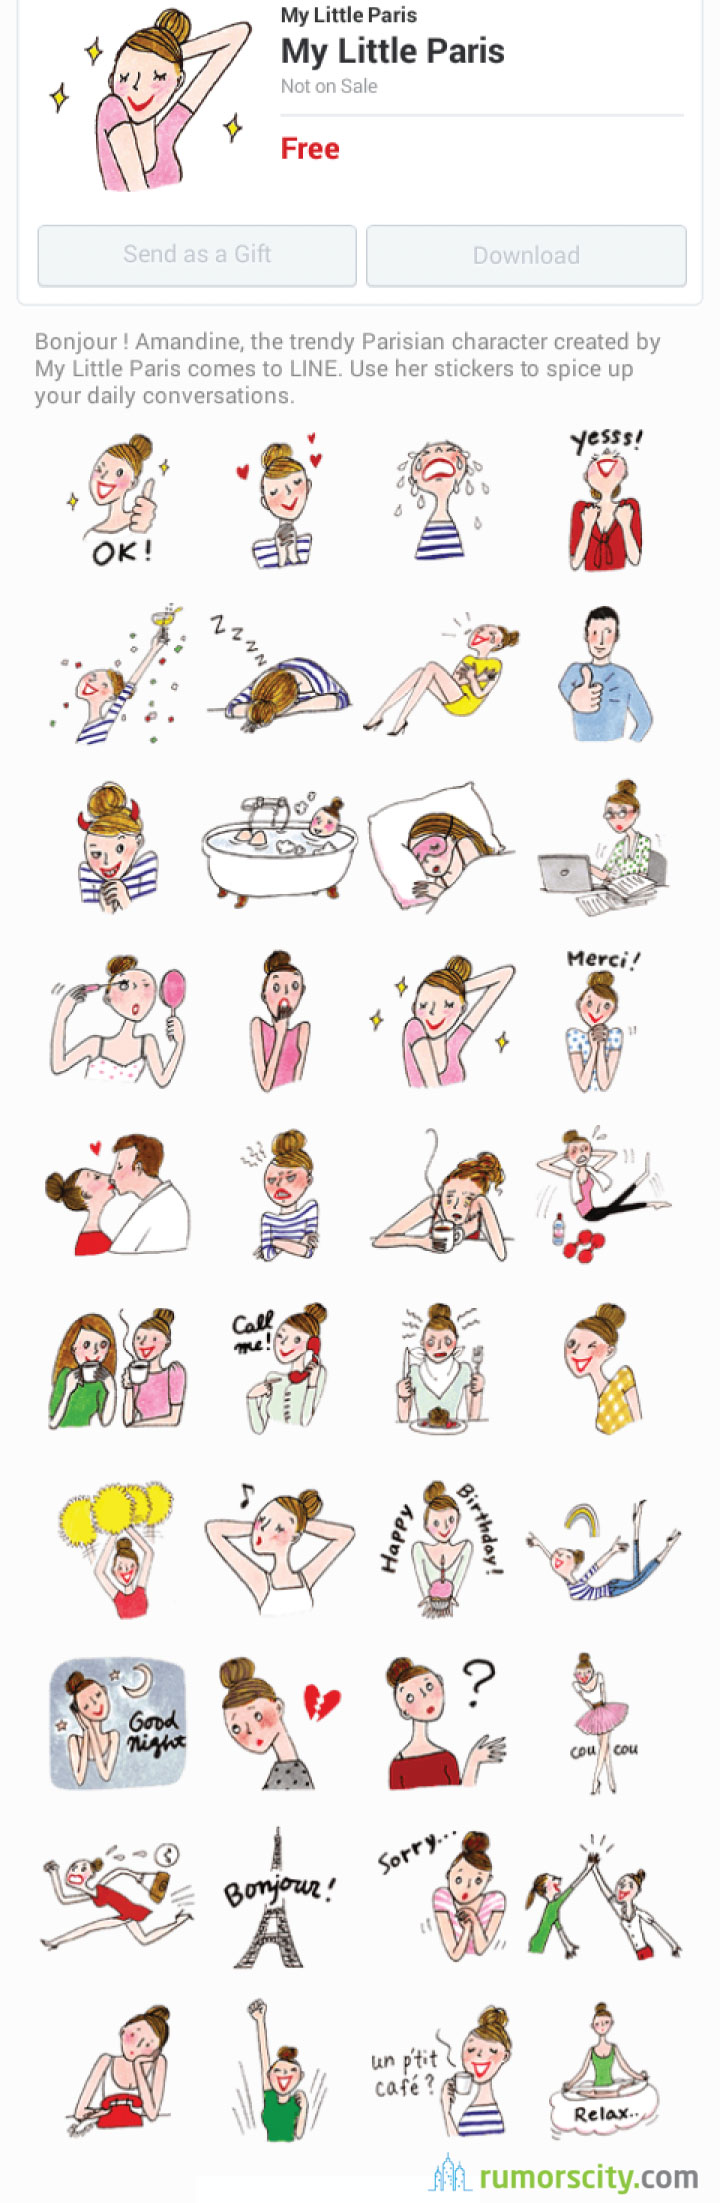 My-Little-Paris-Line-sticker-in-Italy-01